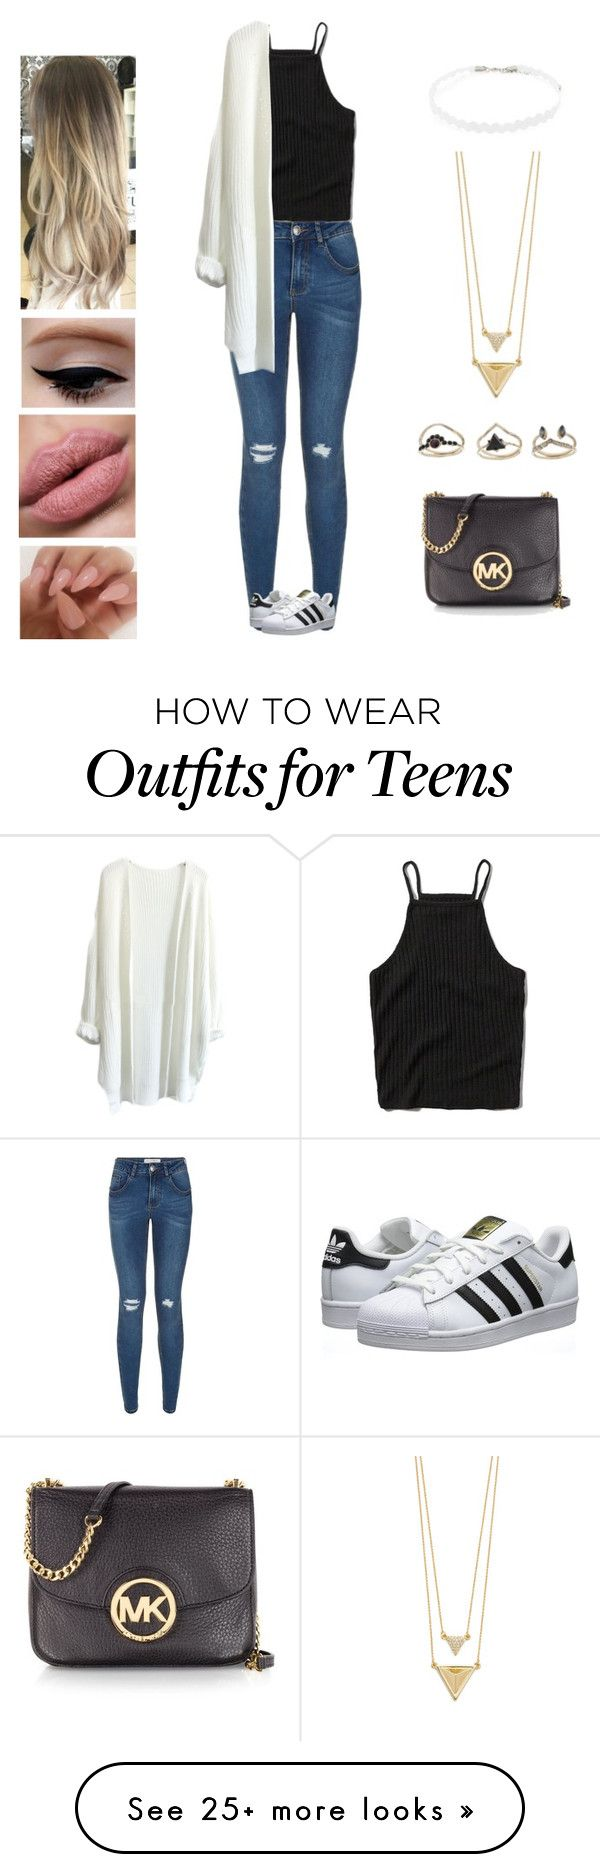 """""""Catch me"""" by kyndraxsvt on Polyvore featuring Abercrombie & Fitch, adidas Originals, Forever 21, House of Harlow 1960, Miss Selfridge and Michael Kors"""